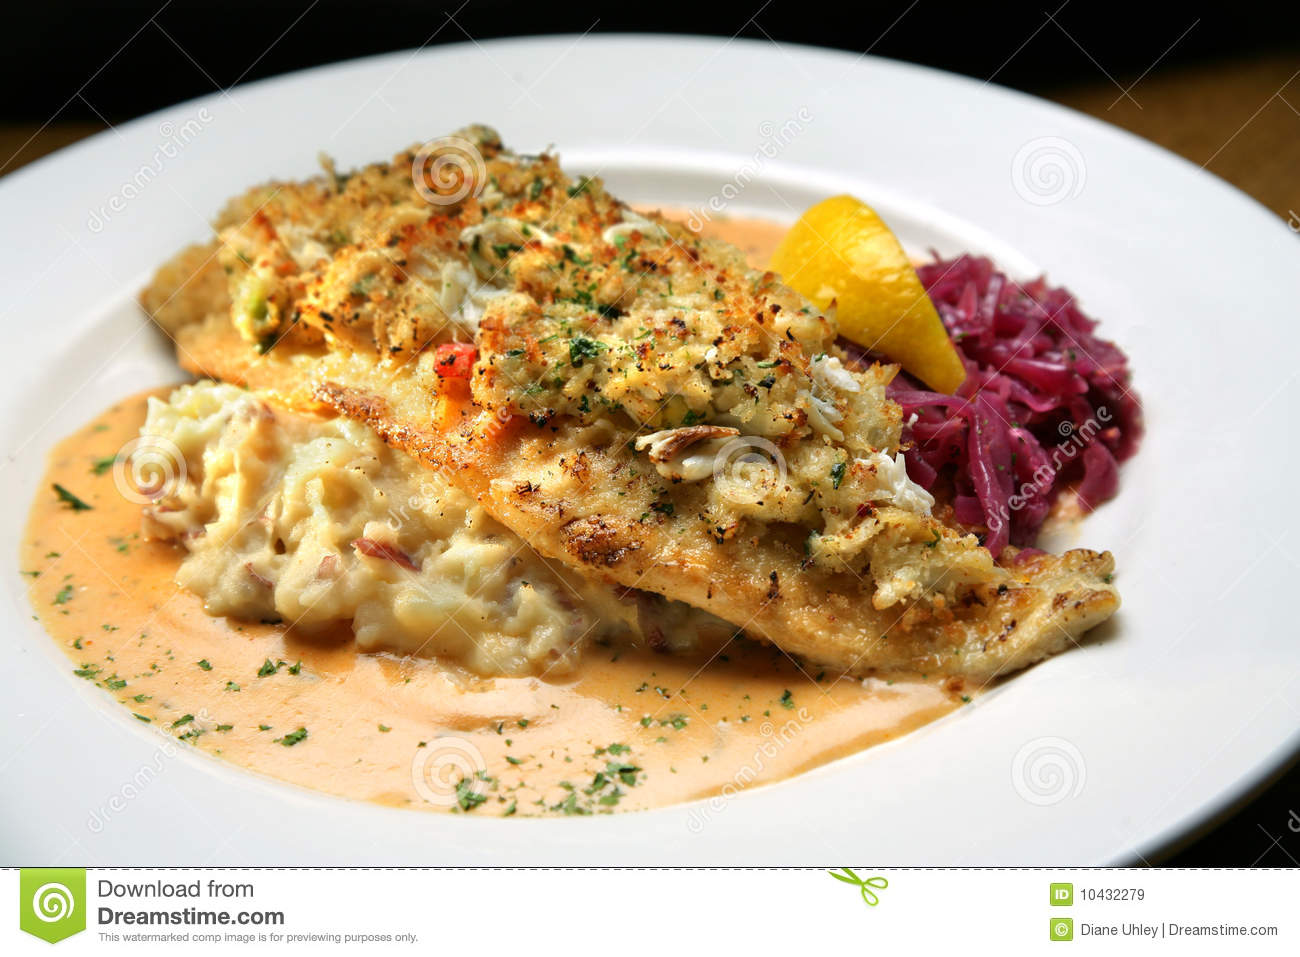 White fish covered with crab meat mashed potatoes royalty for Crab topping for fish